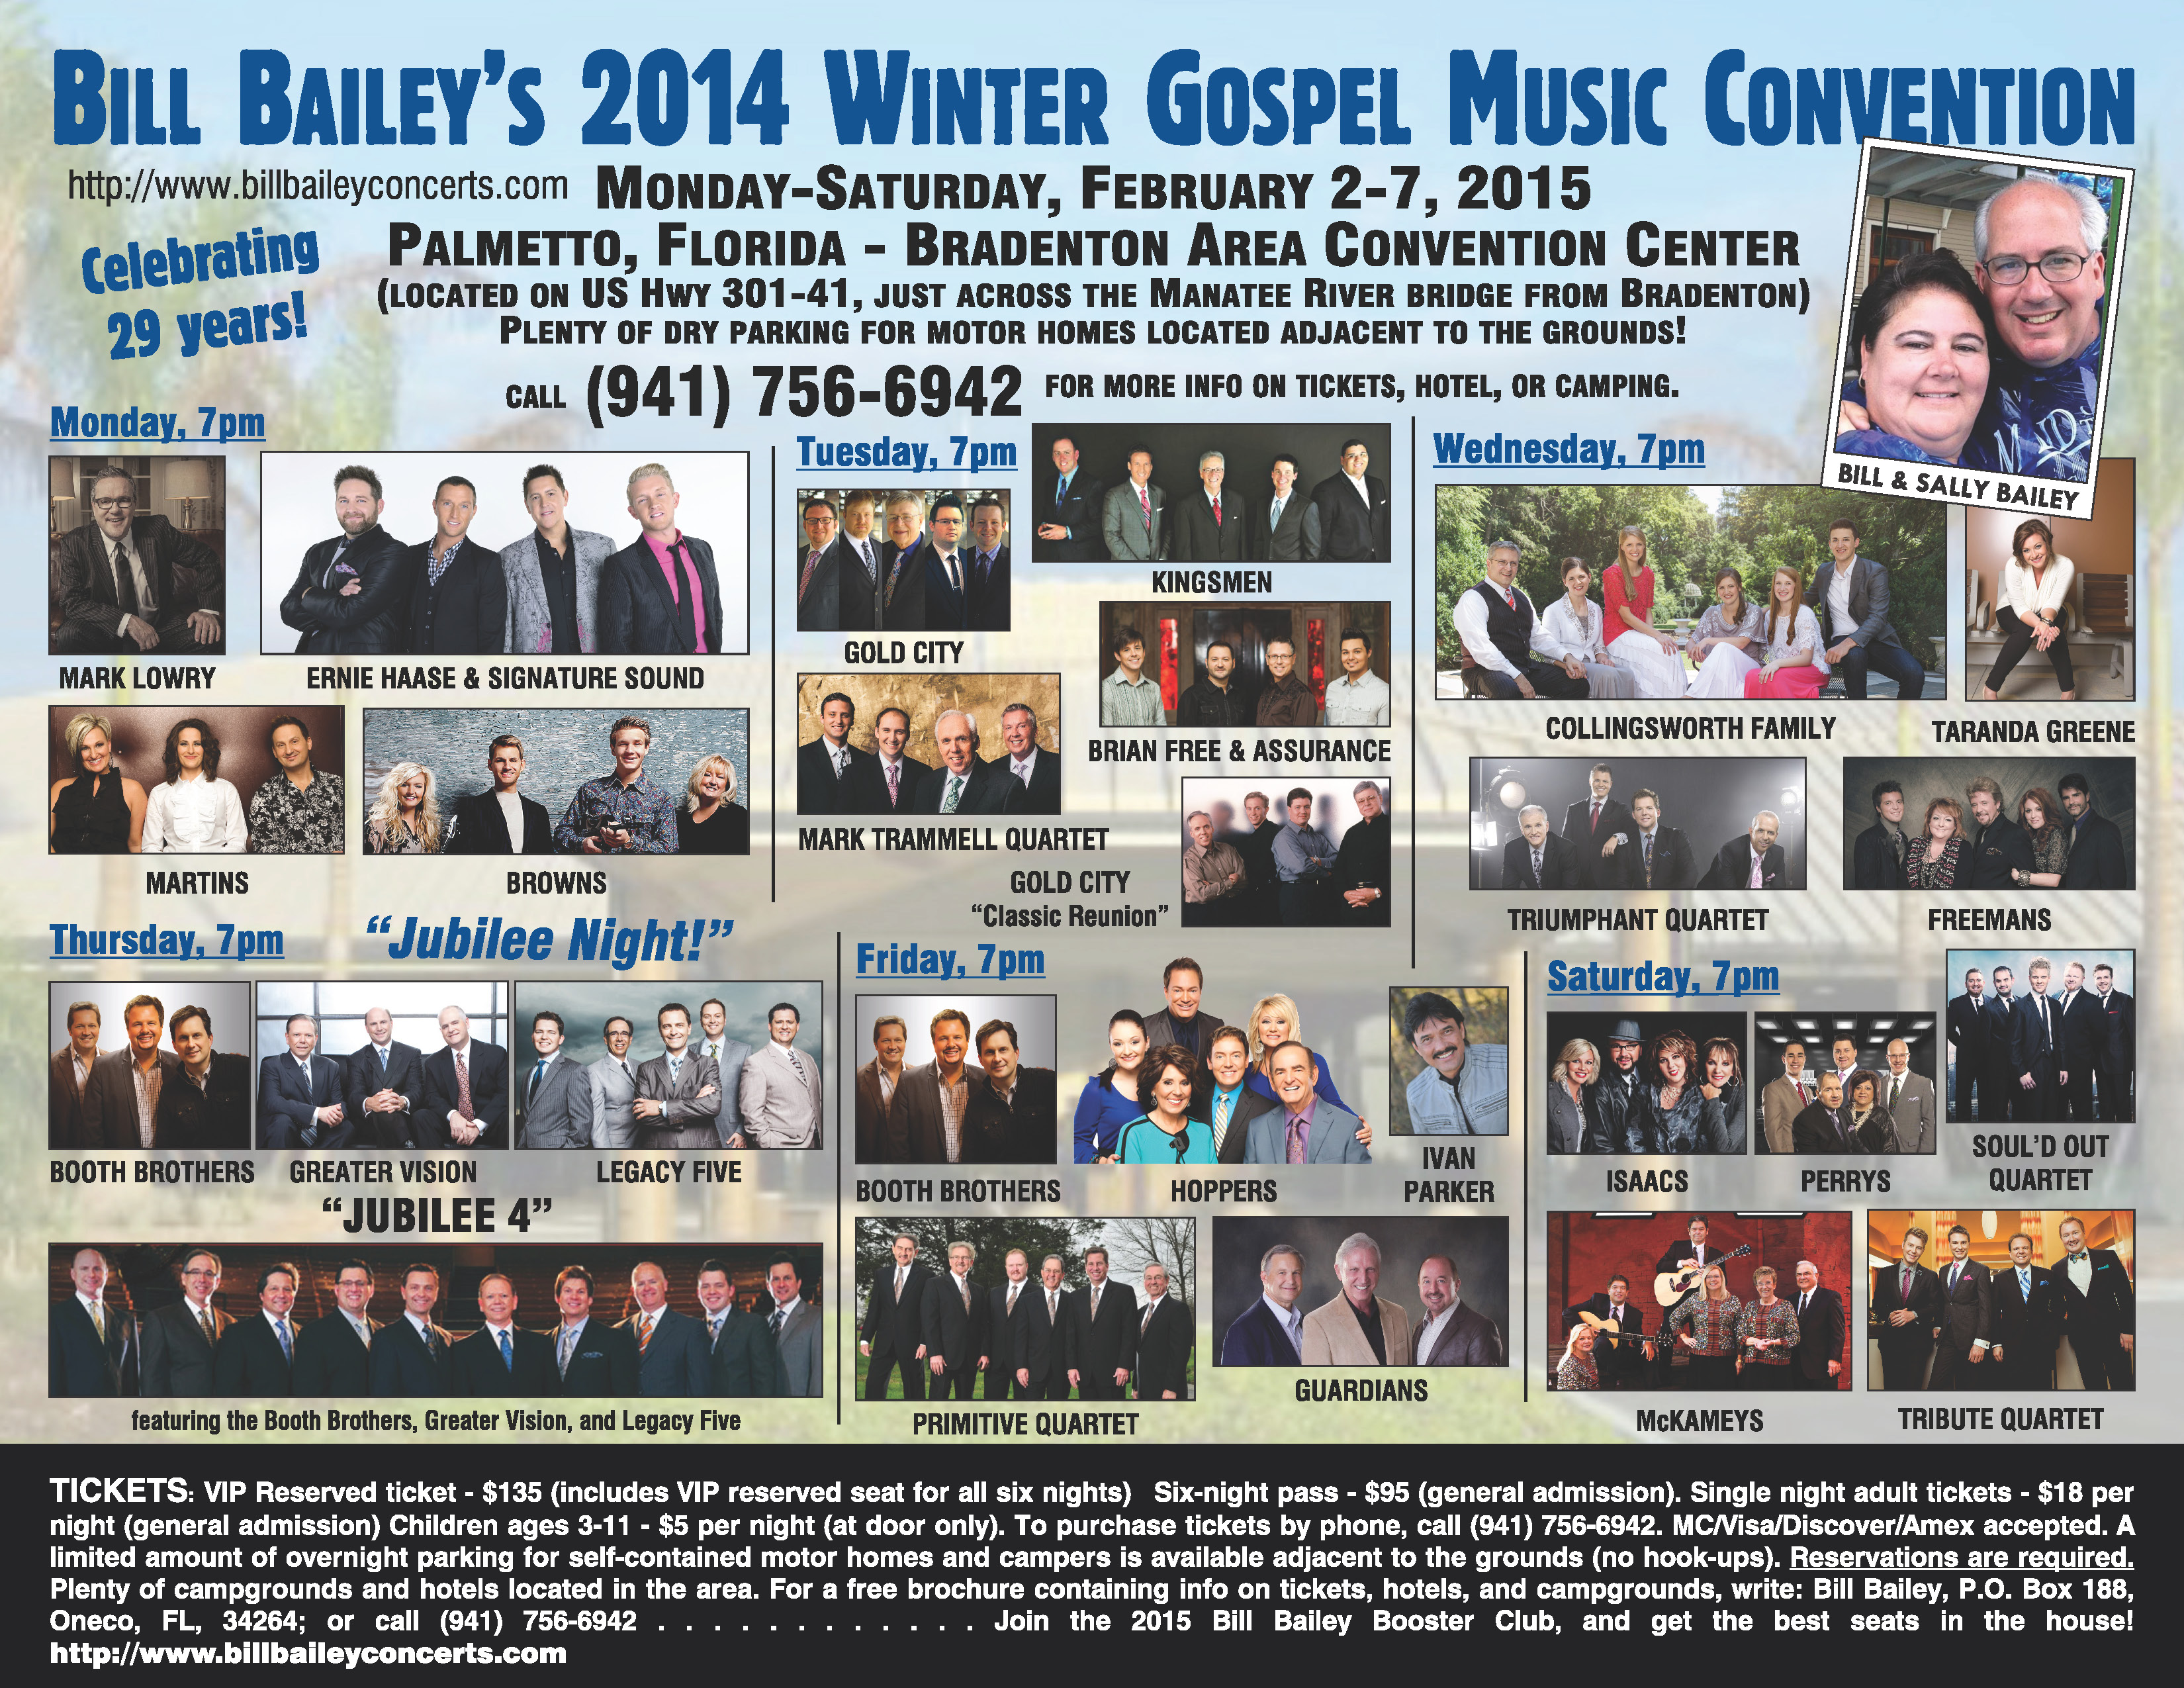 Bill Bailey's 2015 Winter Gospel Music Convention returns to Palmetto, FL!